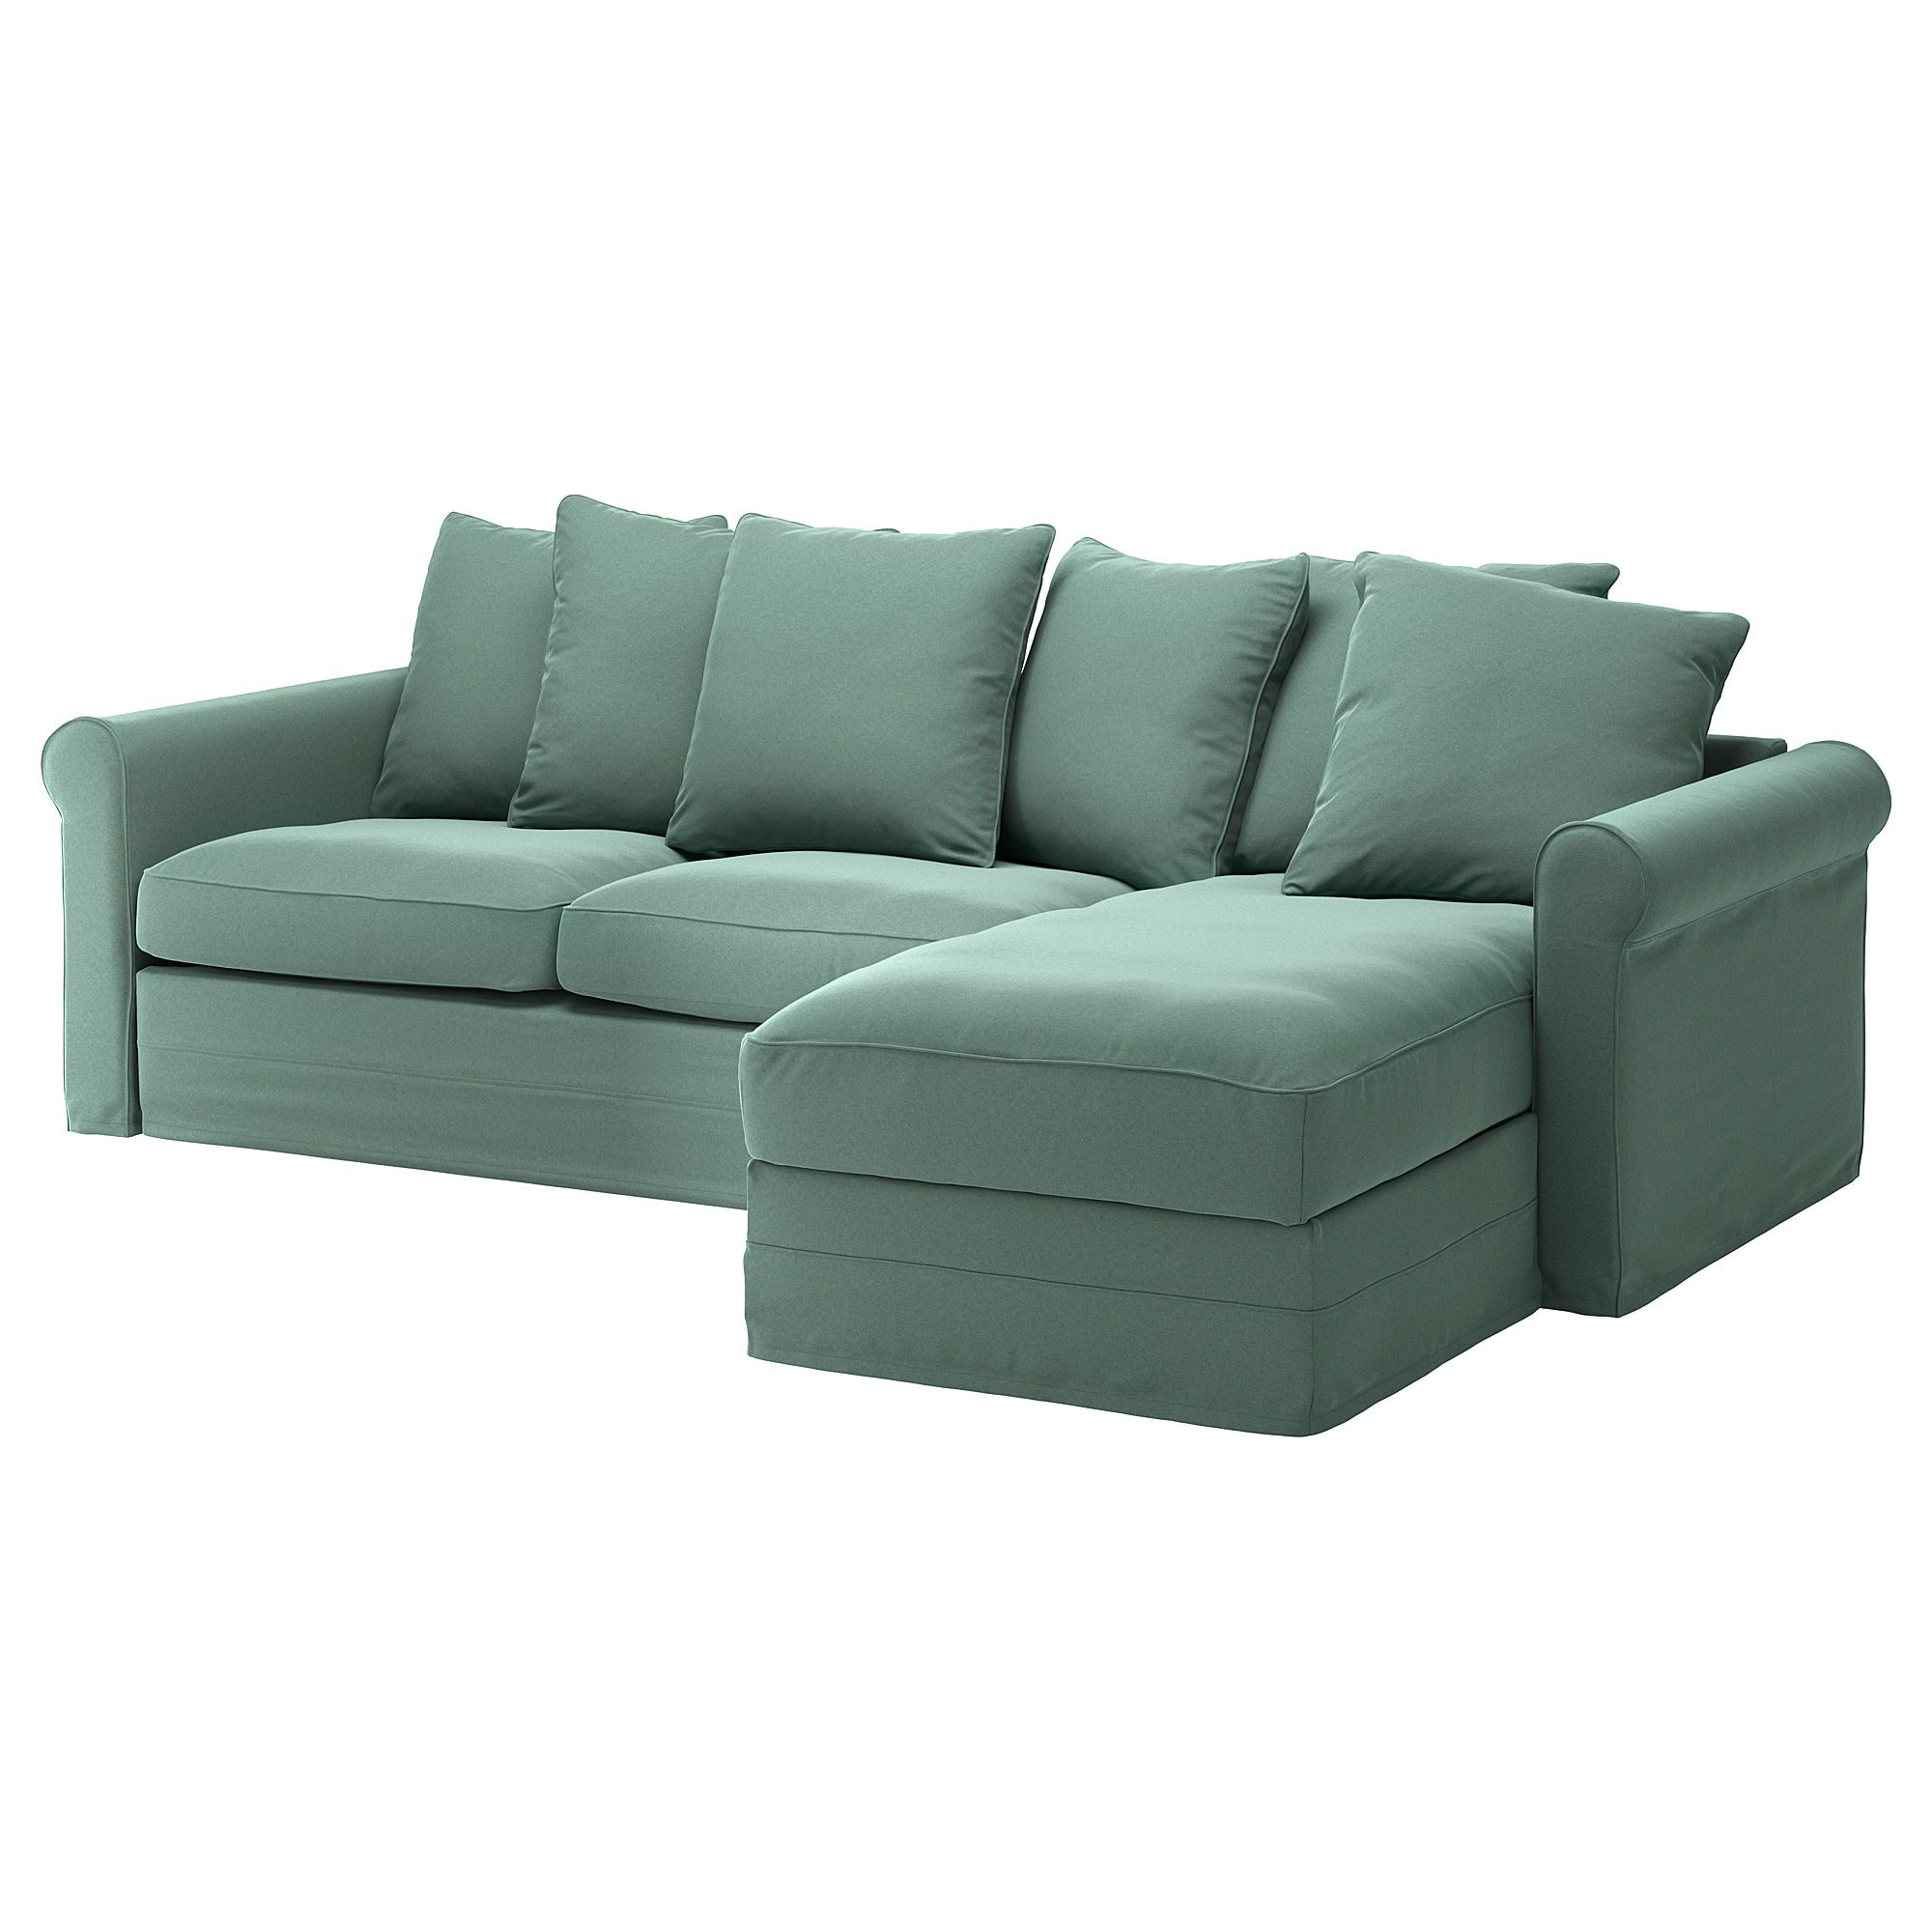 Gr 214 Nlid Sofabed With Chaise Ljungen Light Green